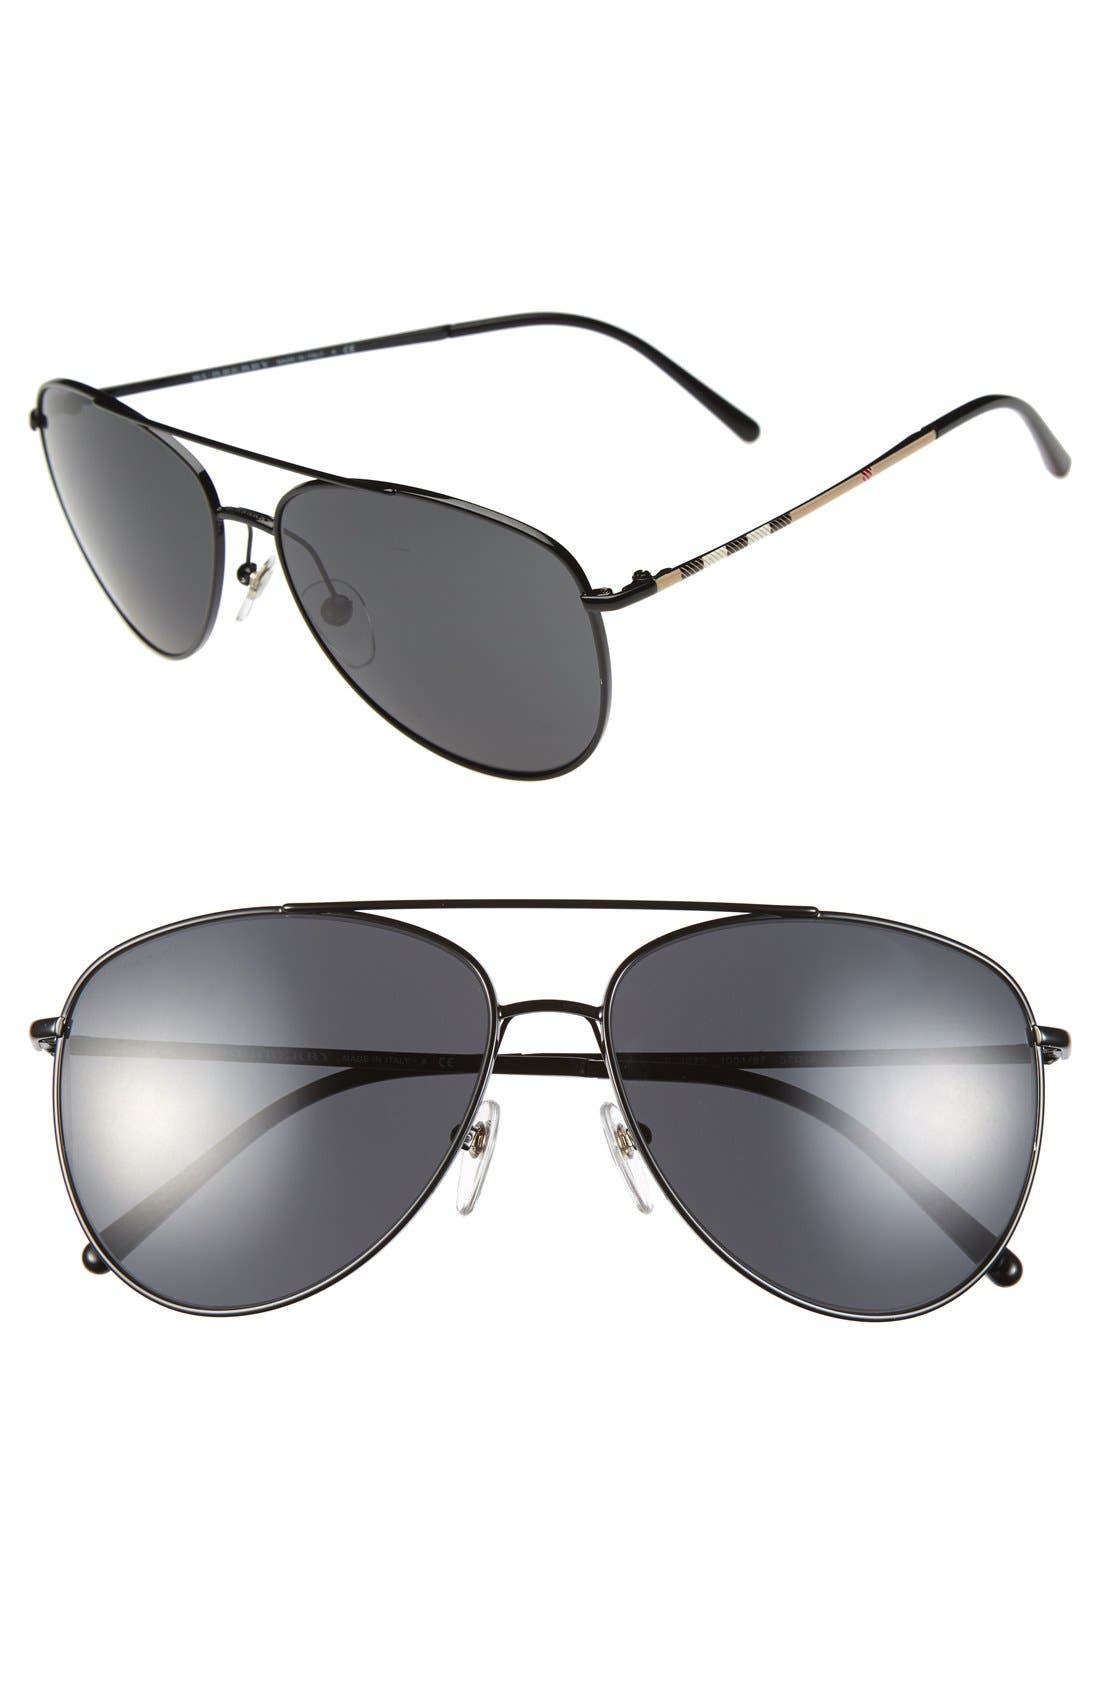 Alternate Image 1 Selected - Burberry 'House Check Foil' 57mm Aviator Sunglasses